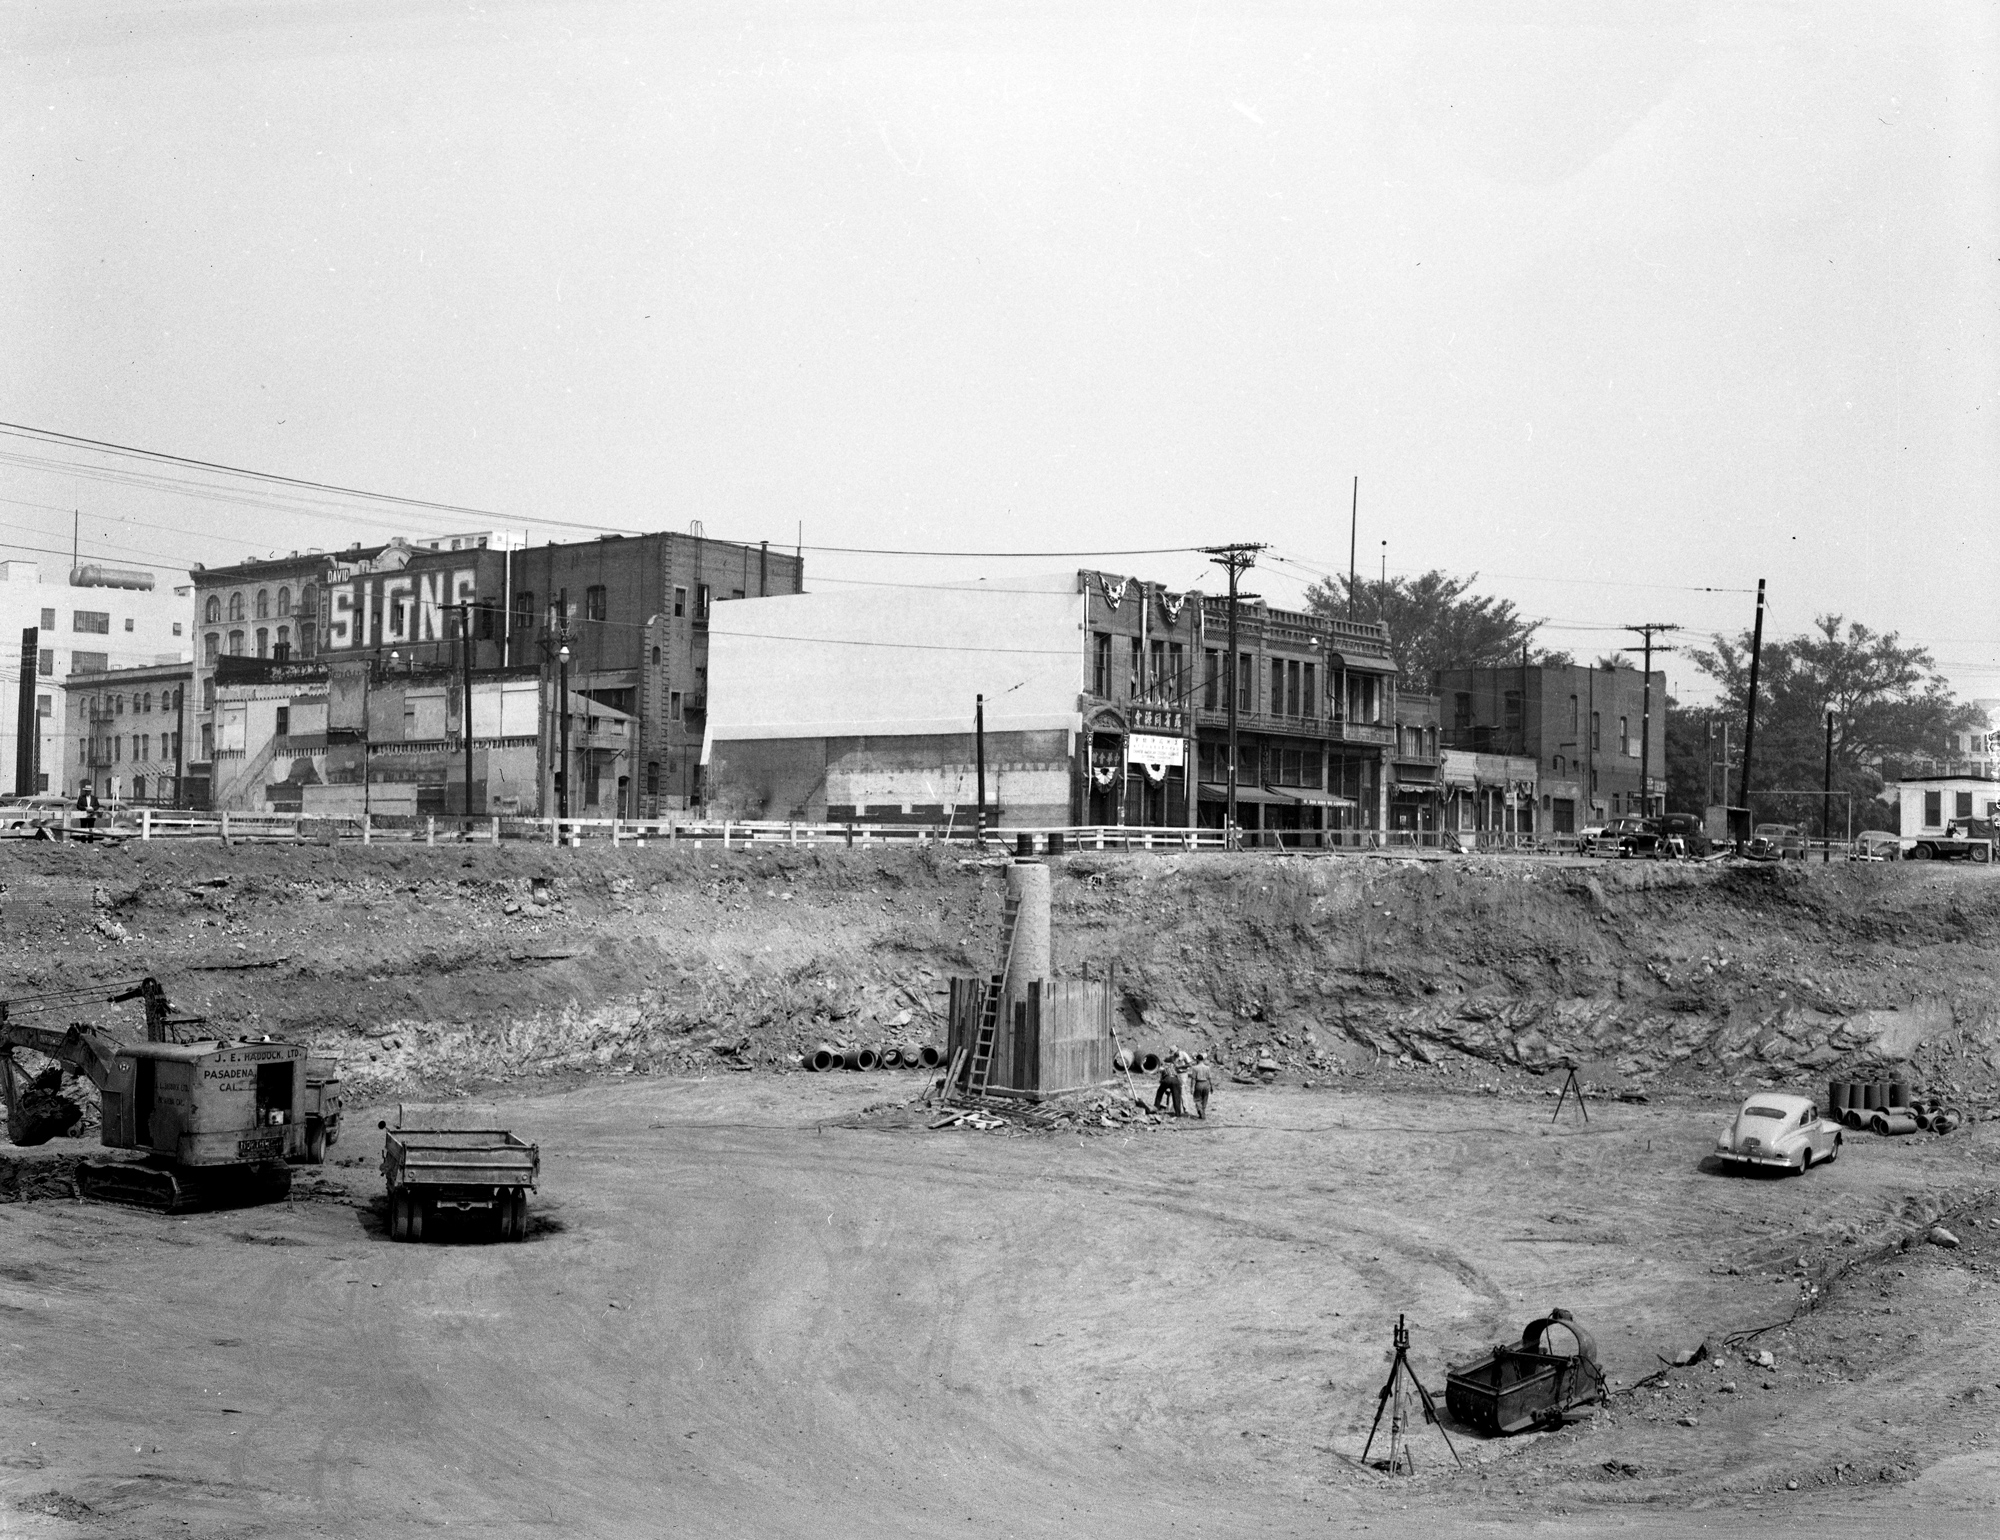 Construction of 101 Freeway after forced relocation of Old Chinatown, Garnier Building (now the Chinese American Museum) in background (1949)